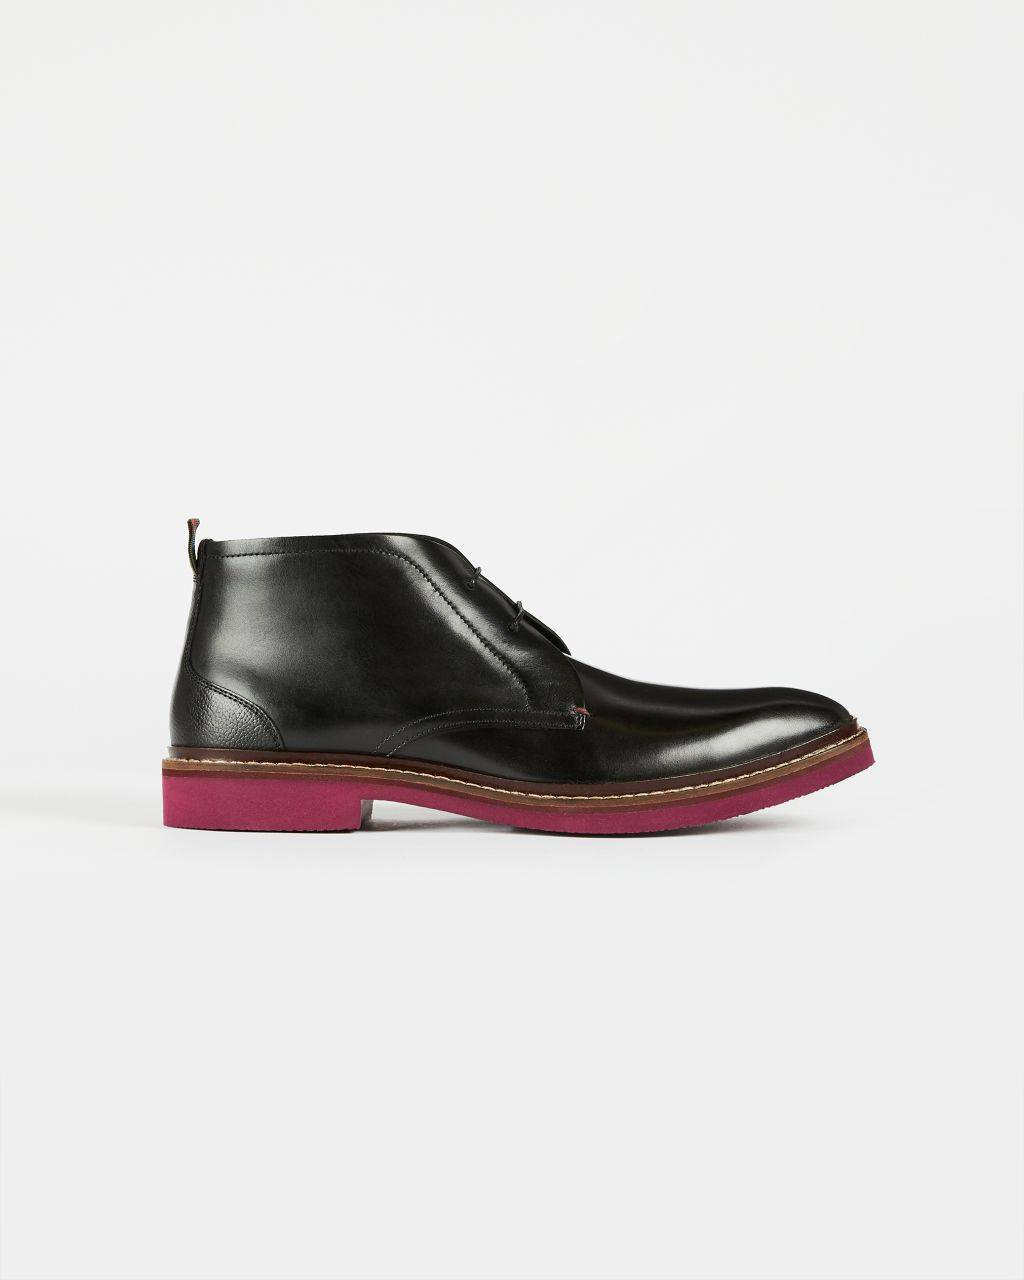 Ted Baker Casual Ankle Boot  - Black - Size: UK 8 (EU 42)